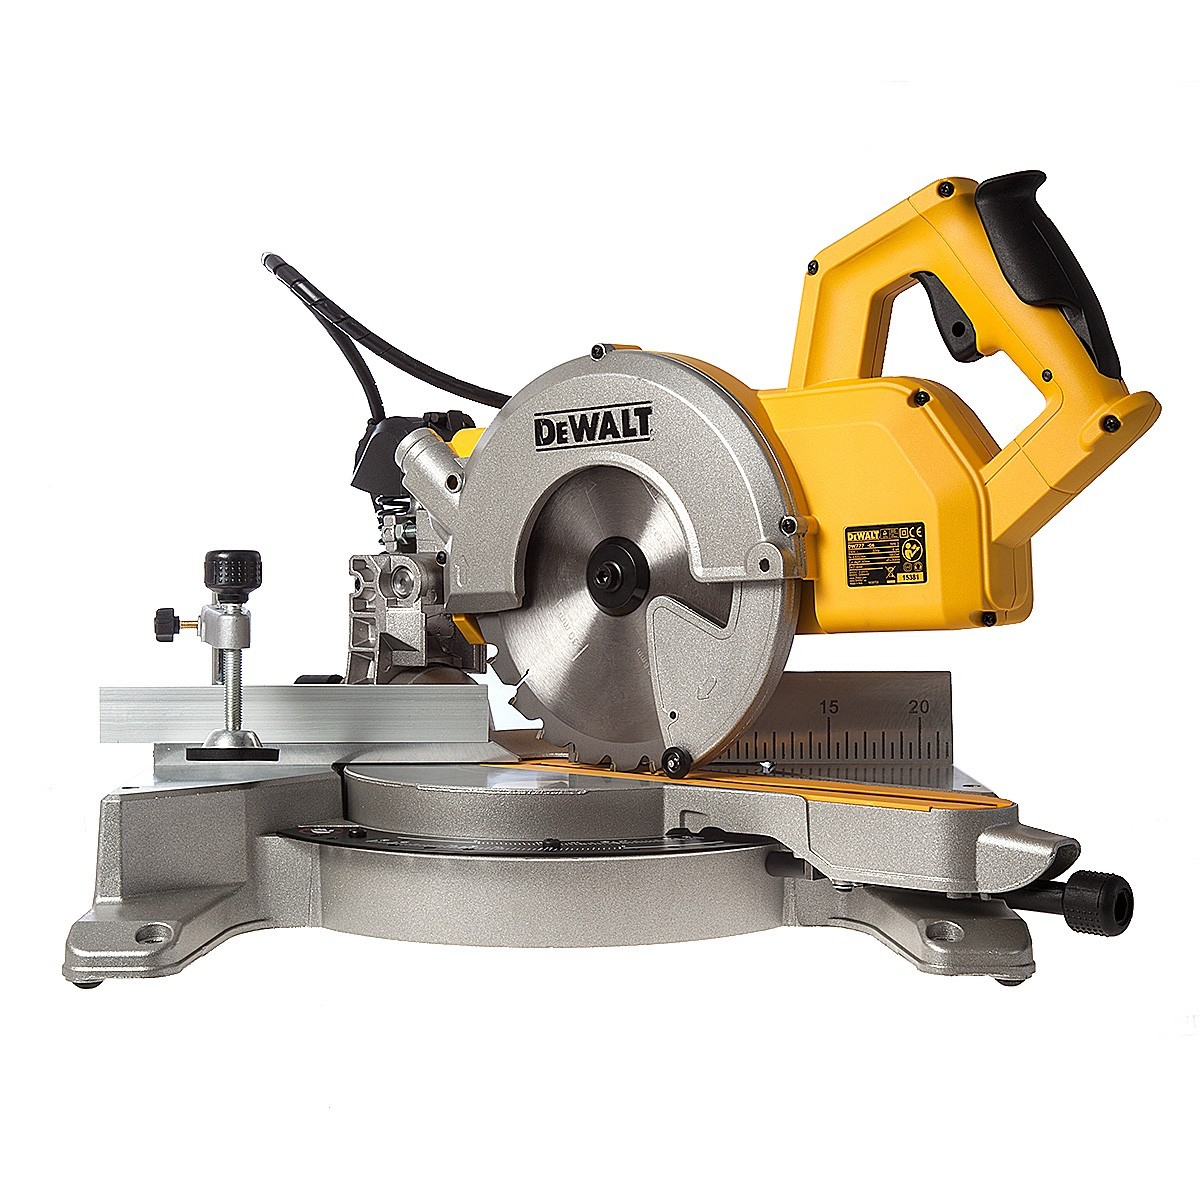 DeWalt DW777 216mm Crosscut Compound Slide Mitre Saw